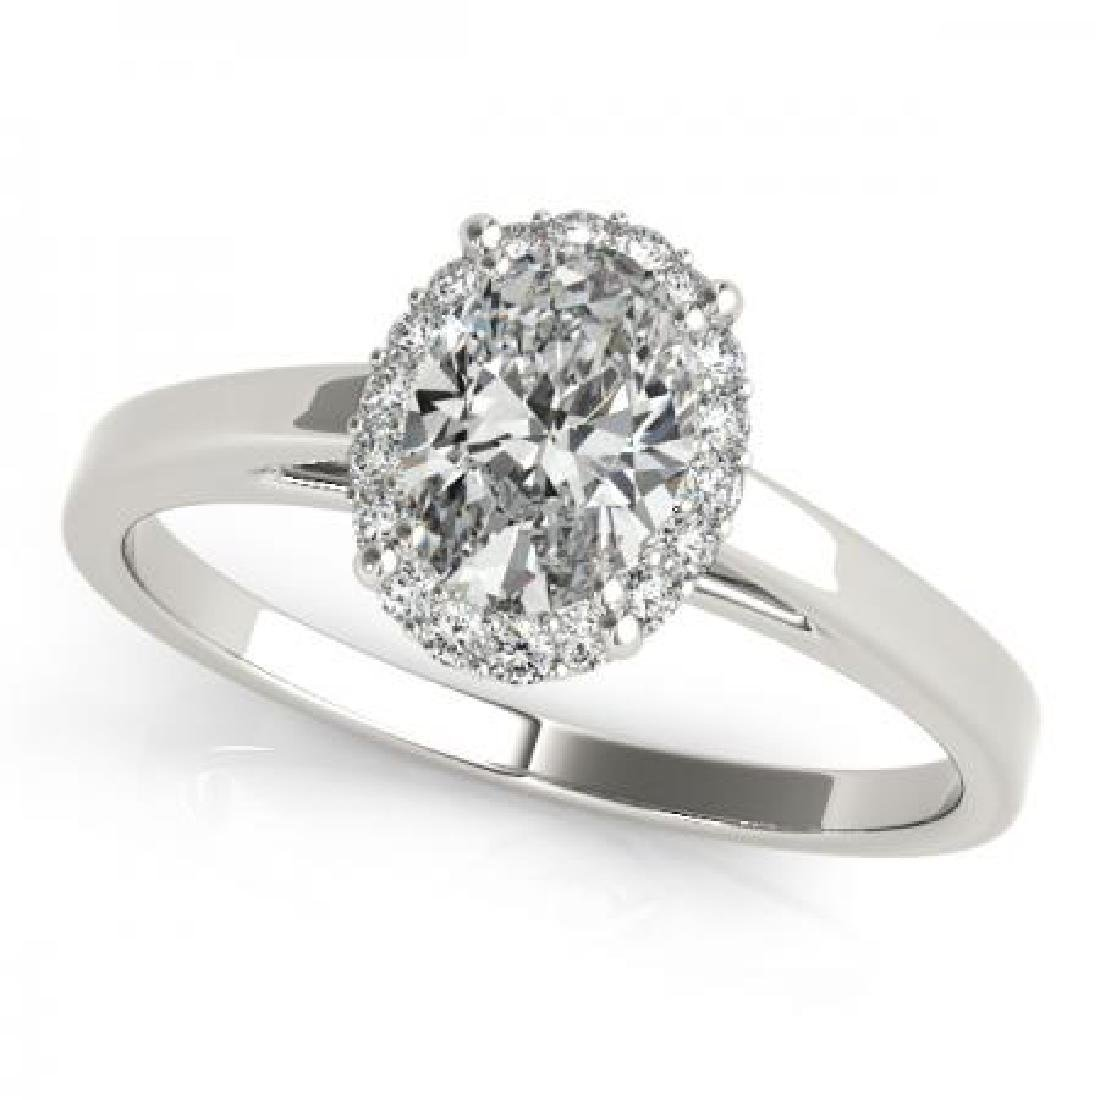 CERTIFIED 14KT WHITE GOLD .95 CT G-H/VS-SI1 DIAMOND HAL